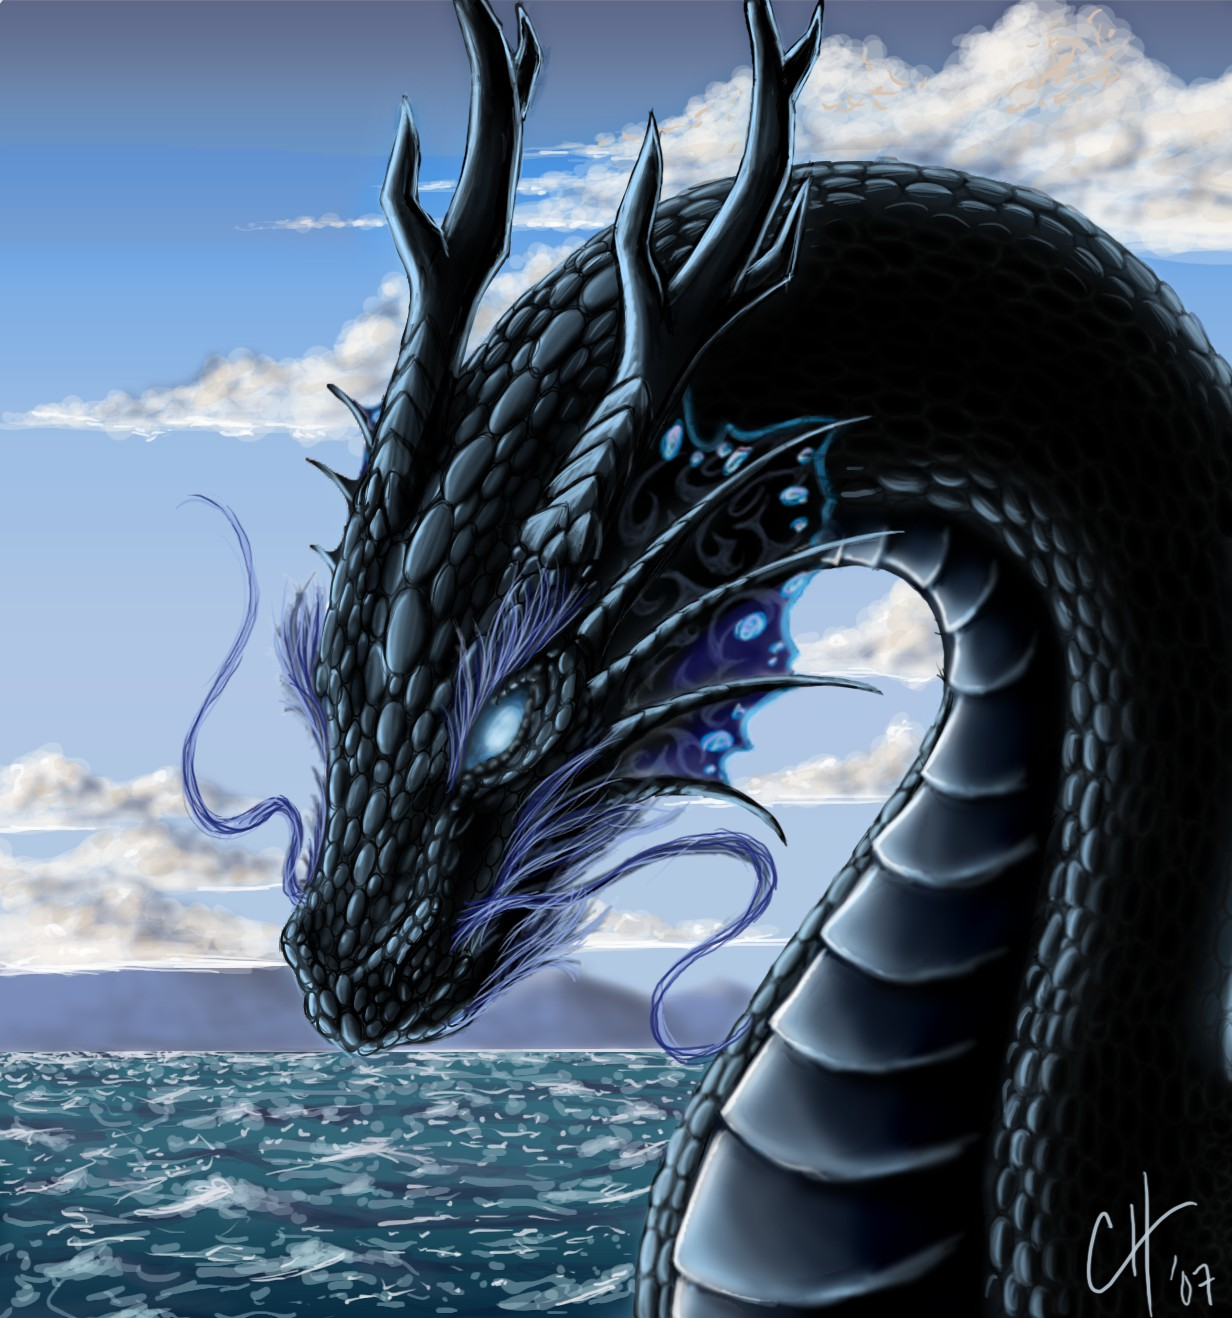 temeraire_by_the_sea_by_corpsewraith.png